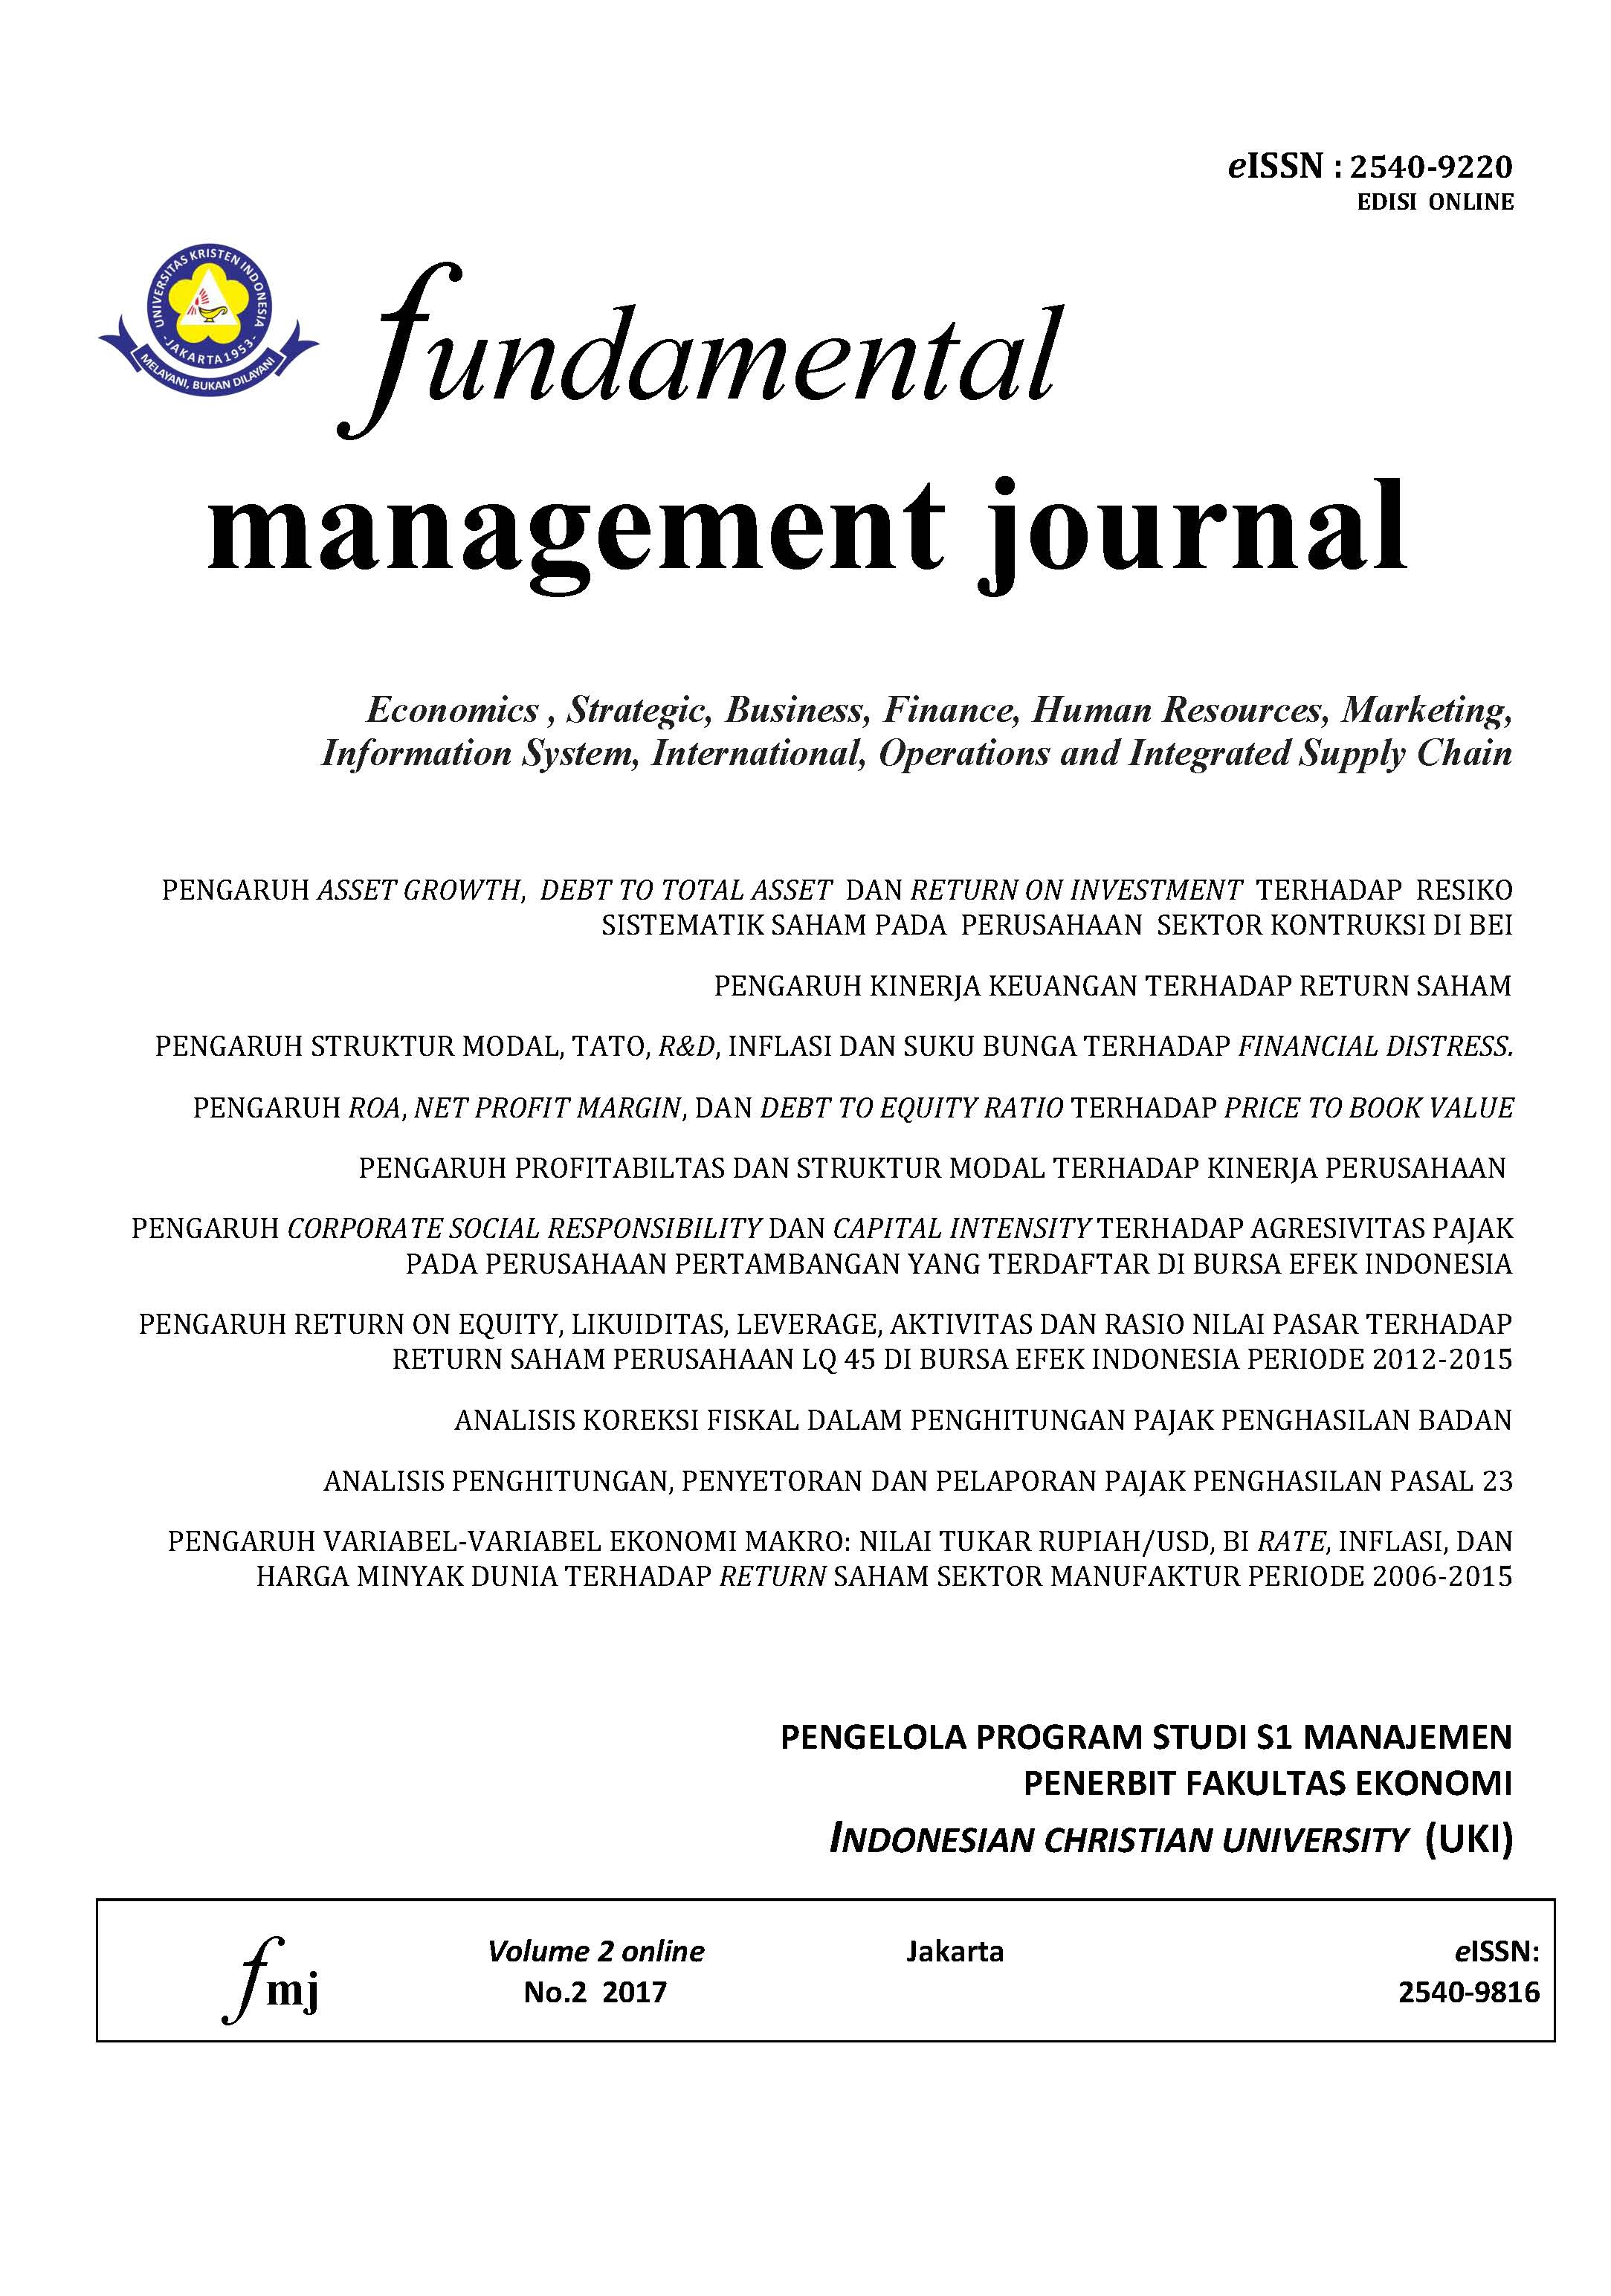 The Effect Of Capital Structure Tato Research And Development Fundamental Management Journal